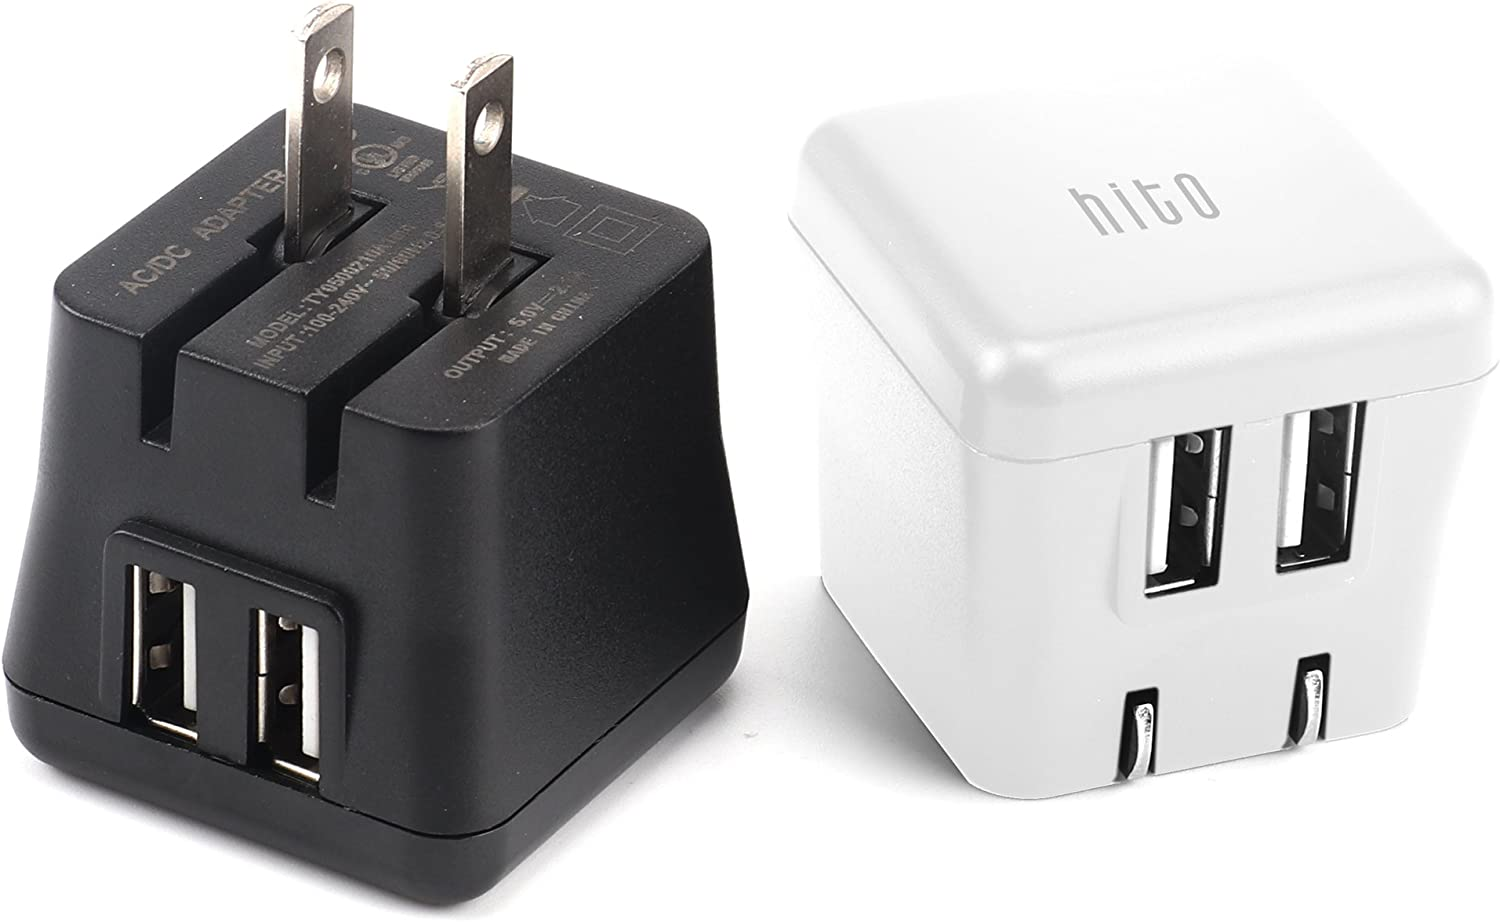 hito 2-Pack 12W 2.4A Dual Port Foldable Plug USB Travel Wall Chargers for iPhone Xs/XS MAX/XR/X/ 8/7/ 7 Plus/ 6s/ 6s Plus, iPad Pro/ Air2/ Mini 3/ Mini 4, Samsung, Kindle and More (1x black+ 1x white)